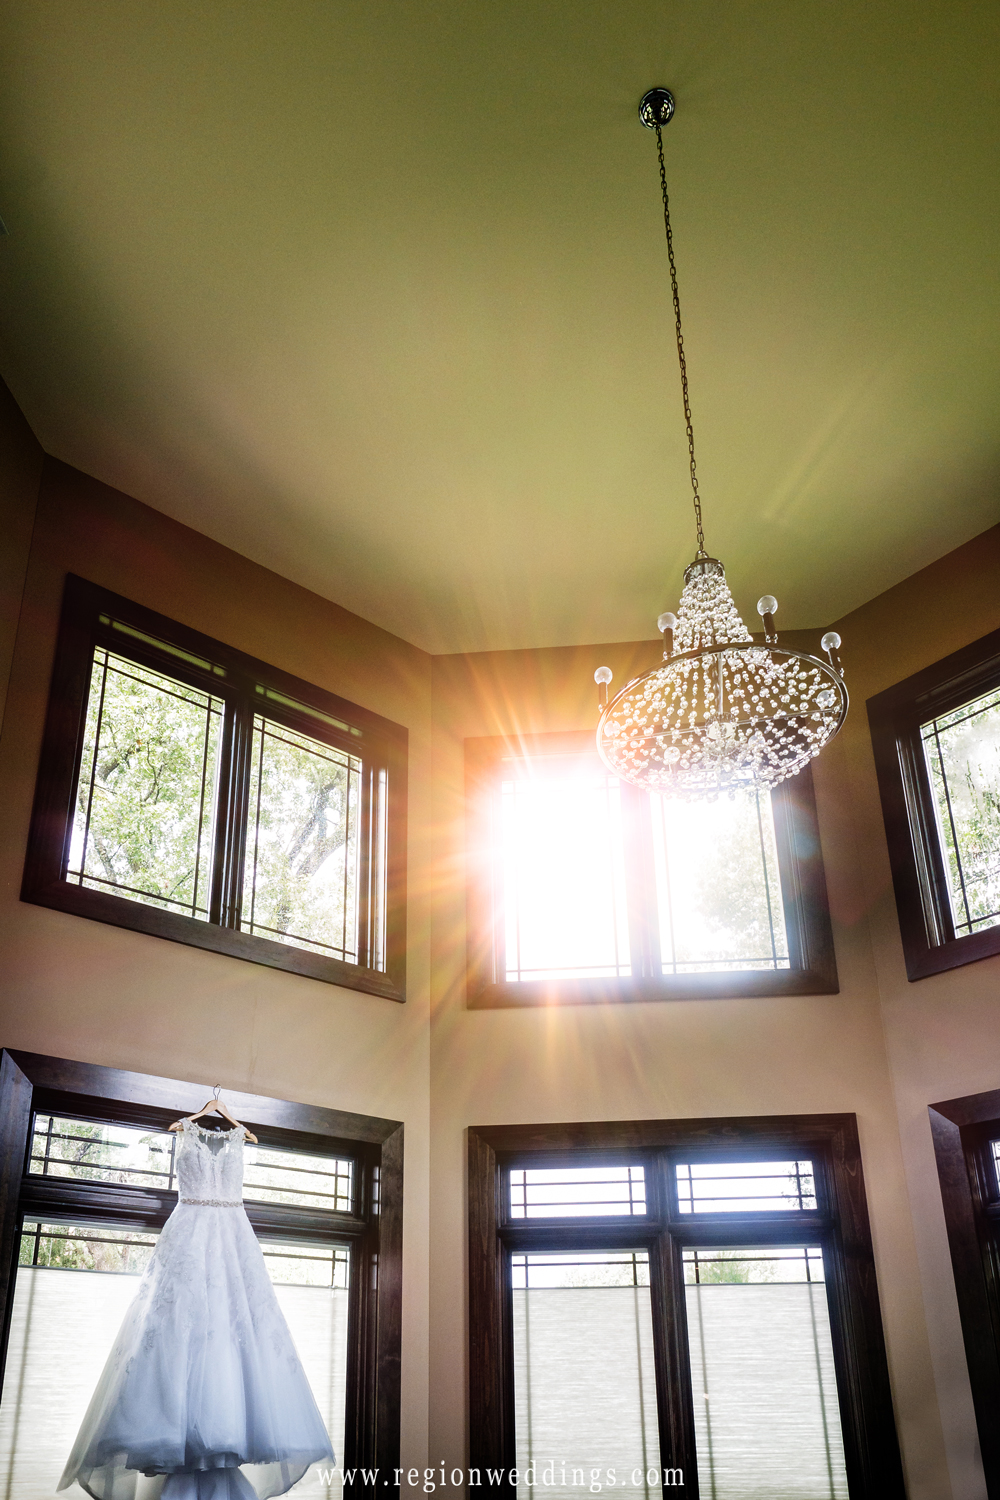 A wedding dress hangs inside the bridal suite at Sandy Pines.